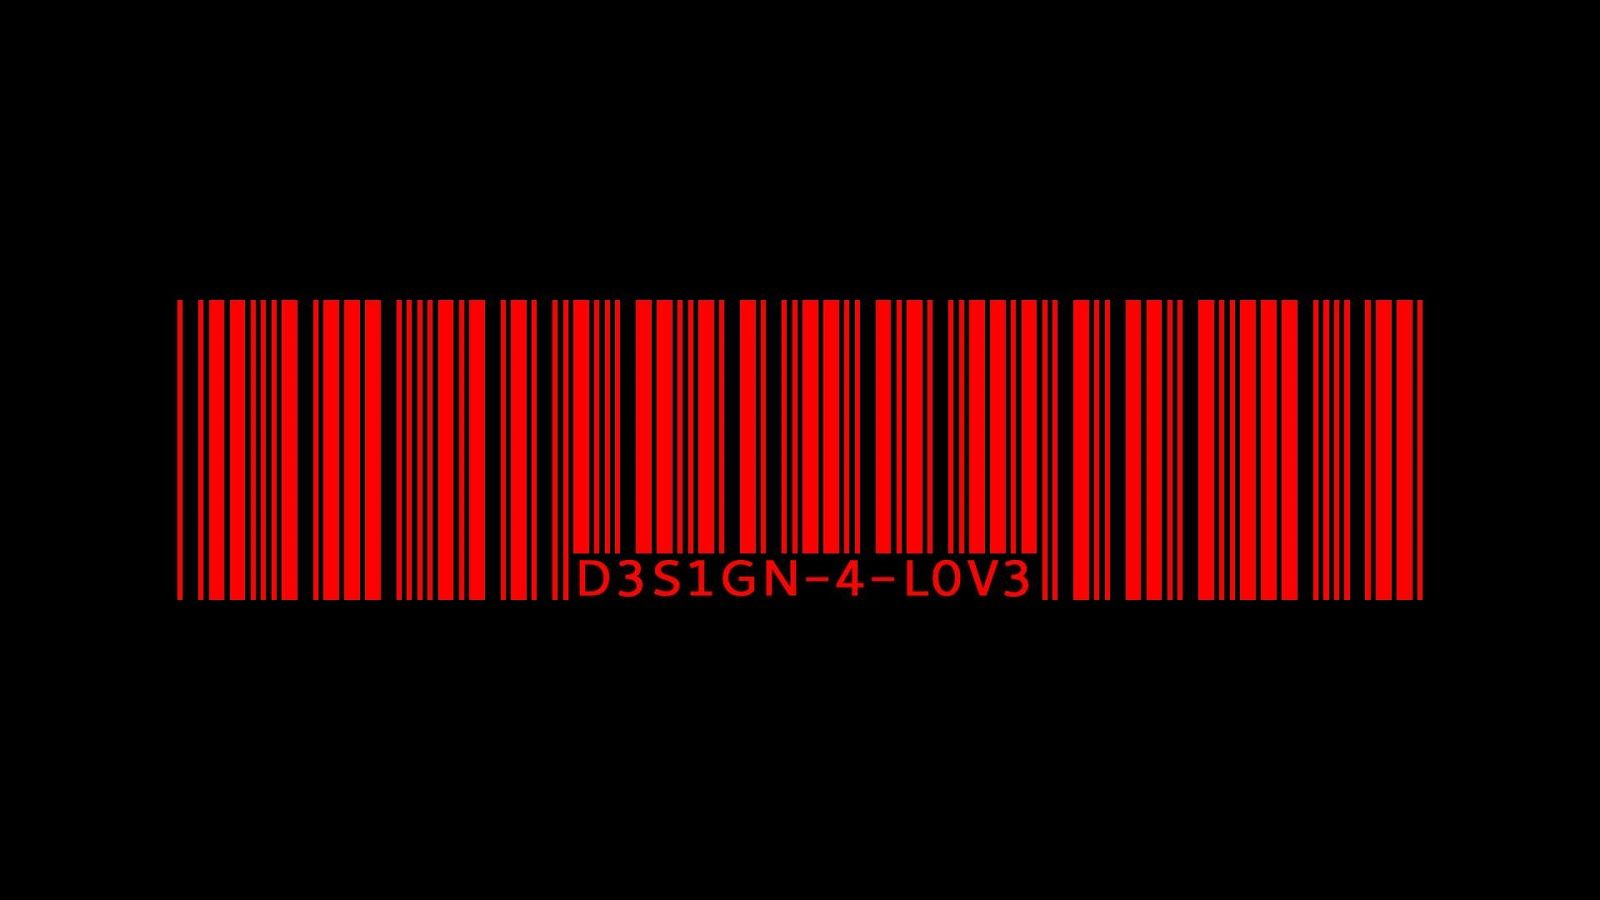 Red White And Black Backgrounds Red Barcode Black Red Wallpaper Black And White Wallpapers Hd Red And Black Wallpaper Black Wallpaper Black And Red